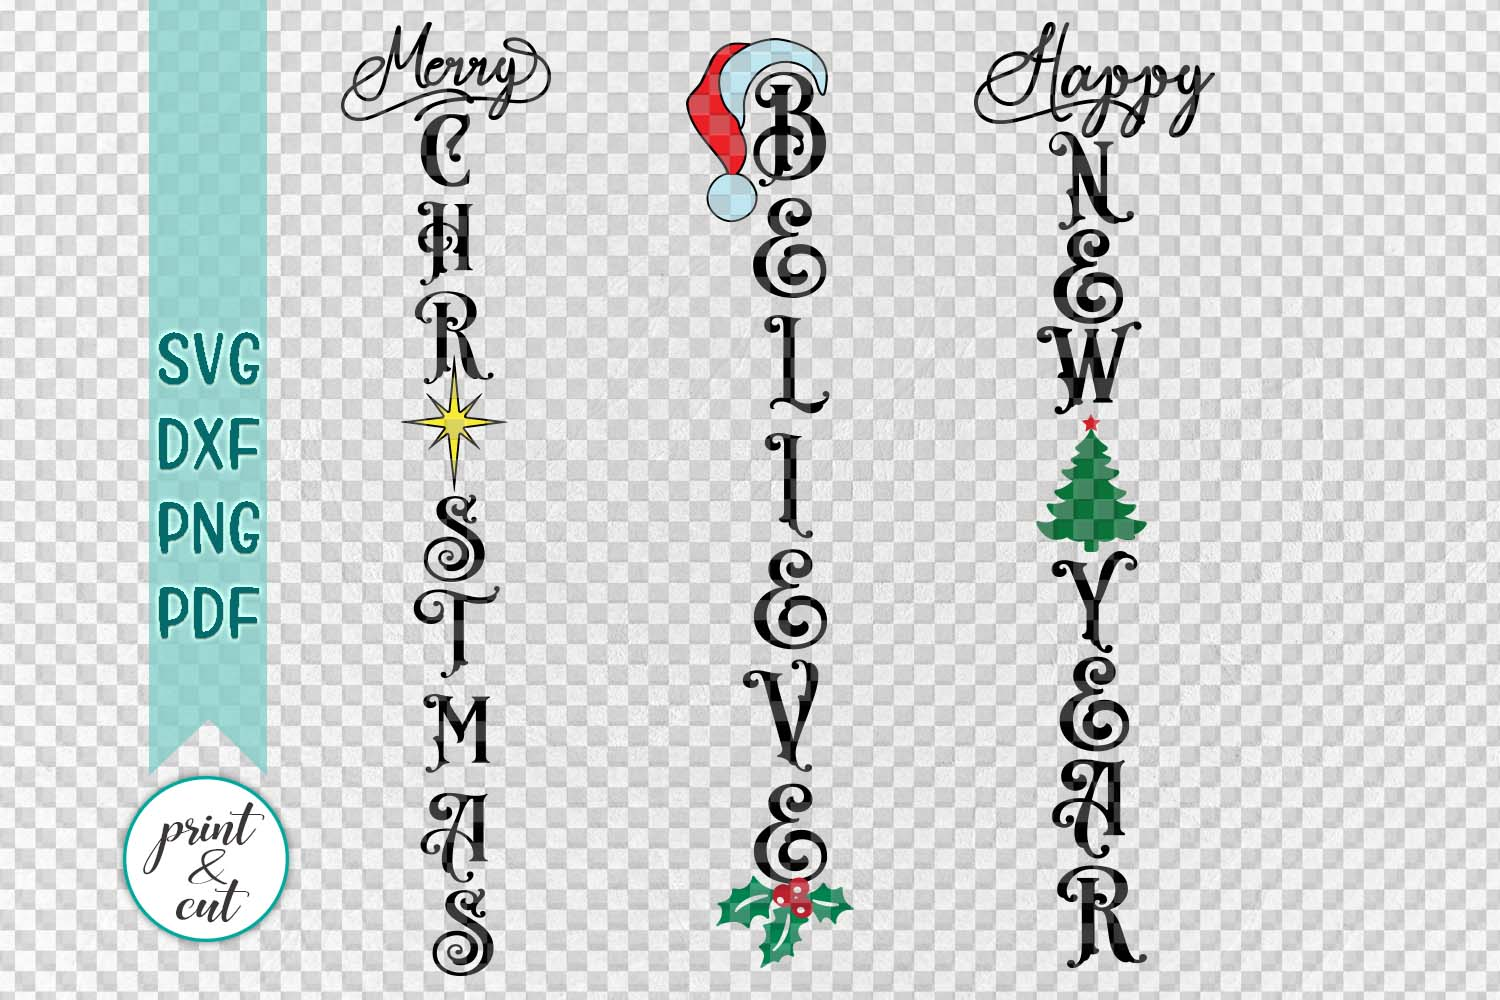 Merry Christmas Happy New Year Believe bundle vertical sign example image 2